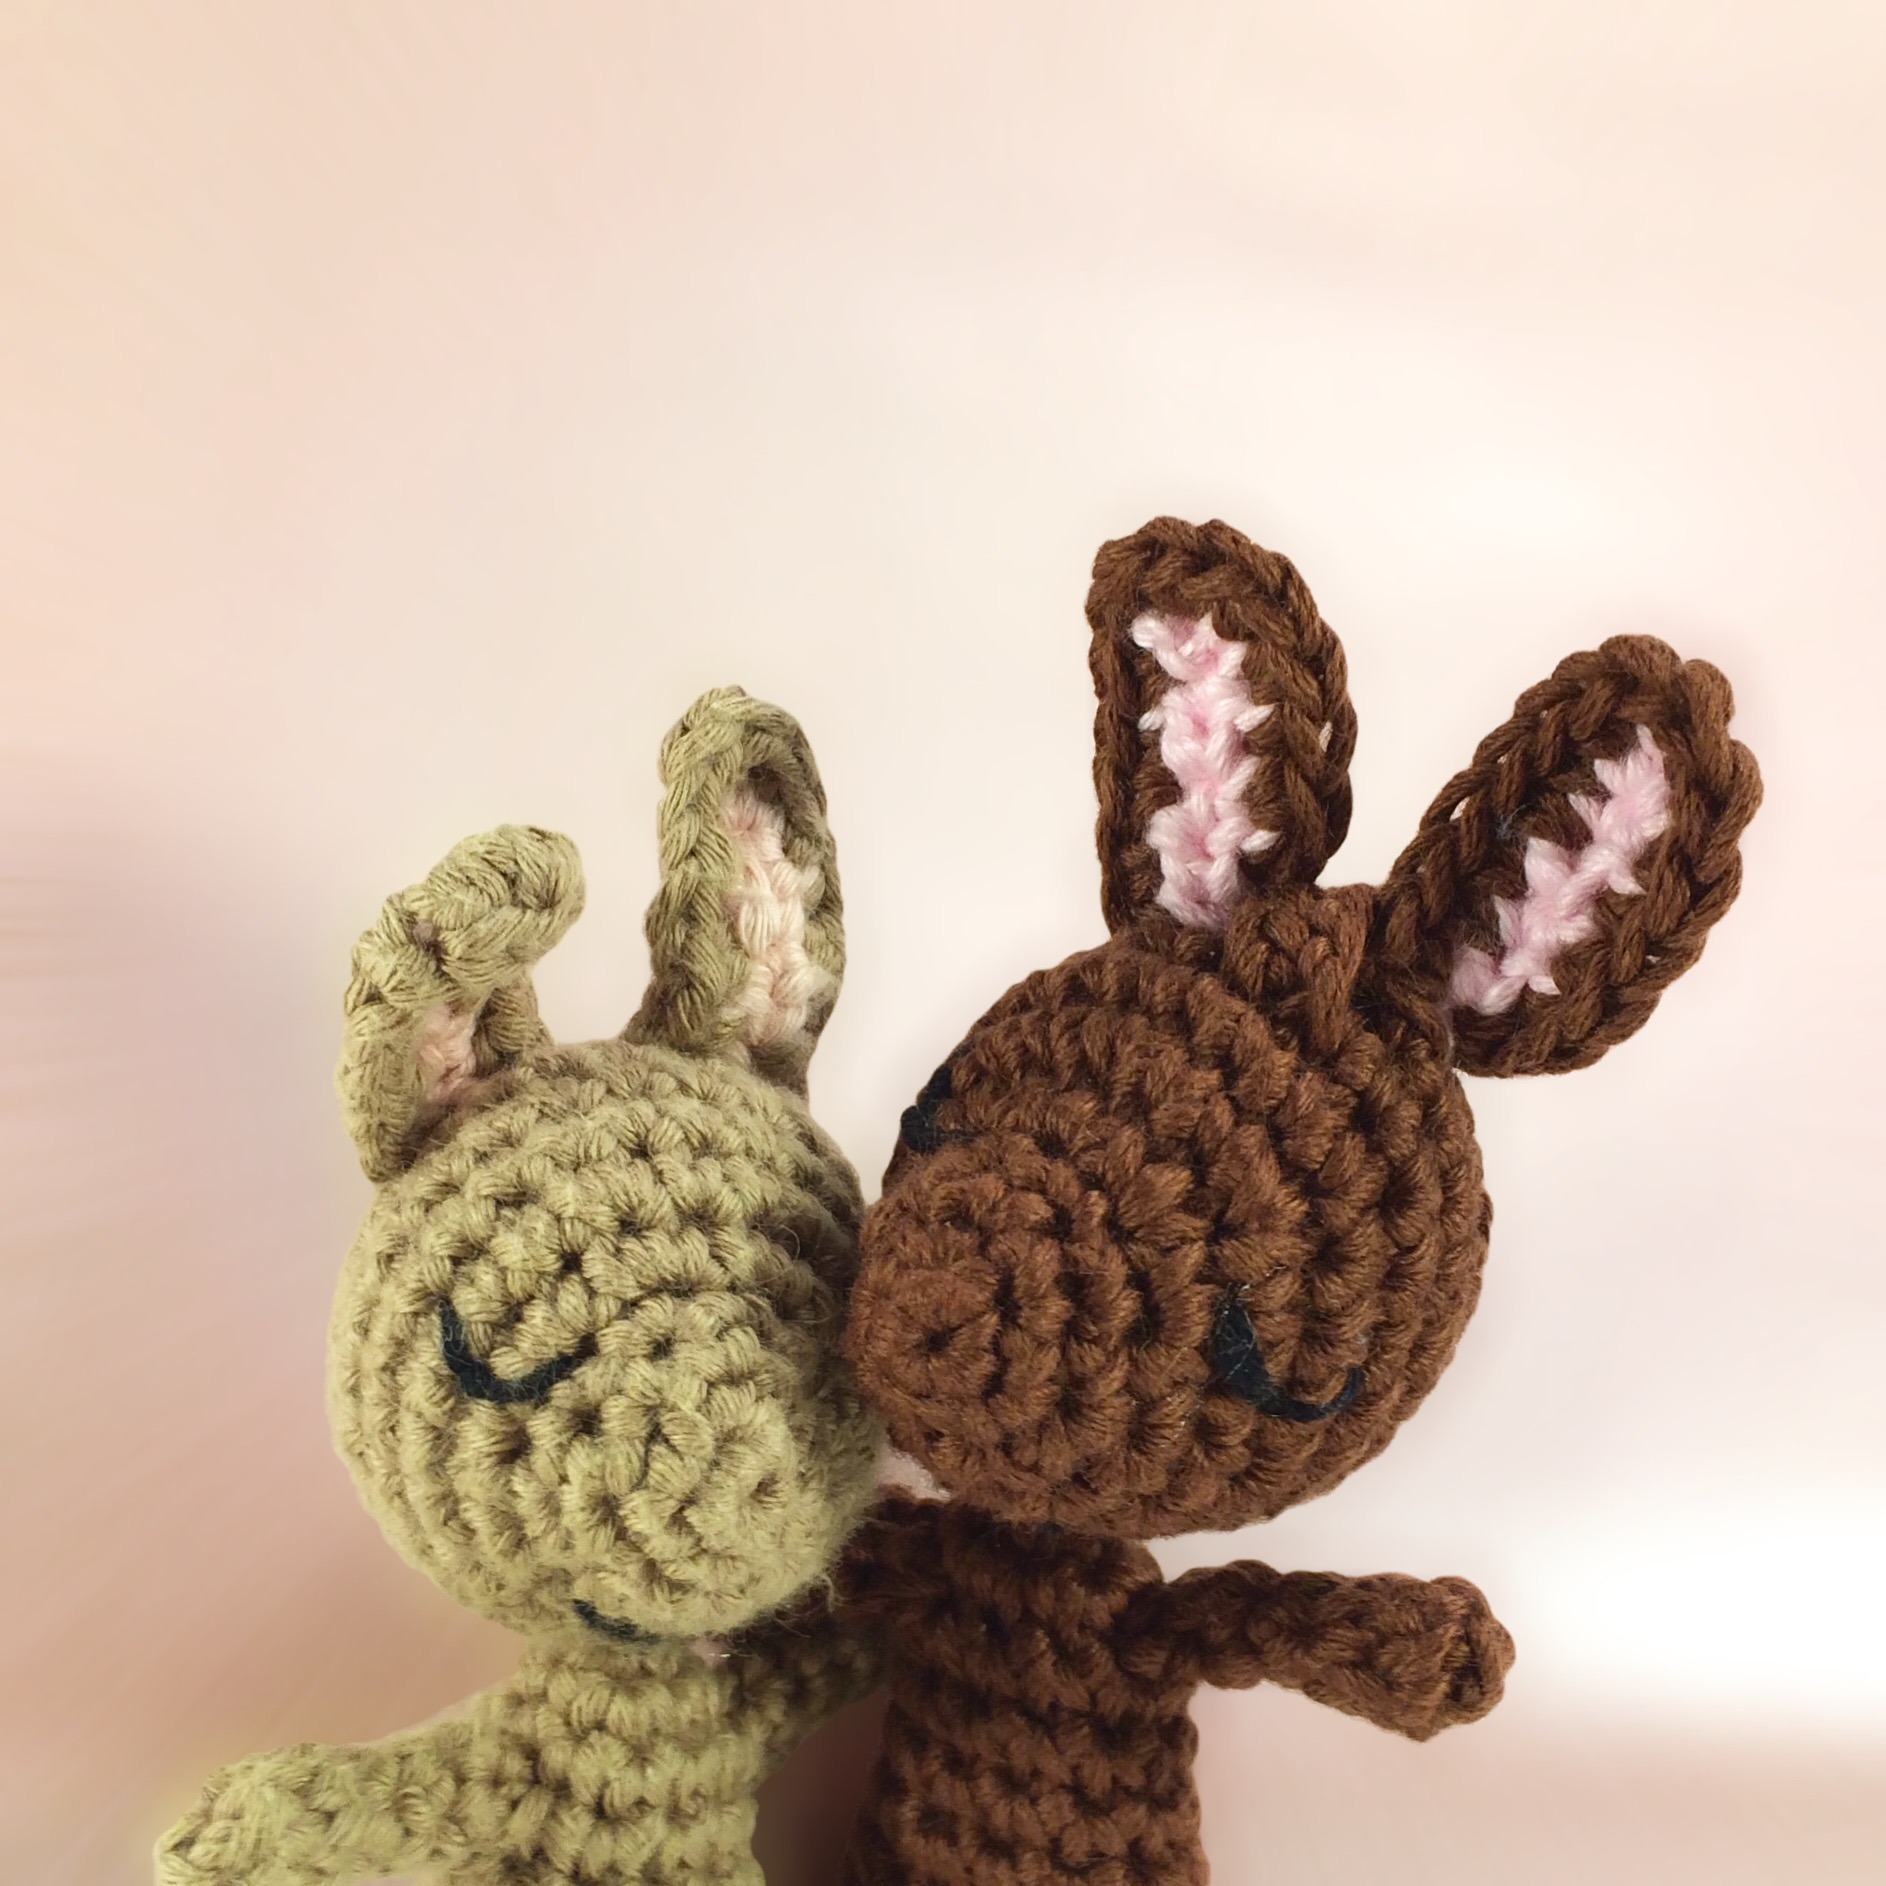 Bunny couple love keychain free pattern (With images) | Crochet keychain  pattern, Love keychain, Amigurumi free pattern | 1886x1886